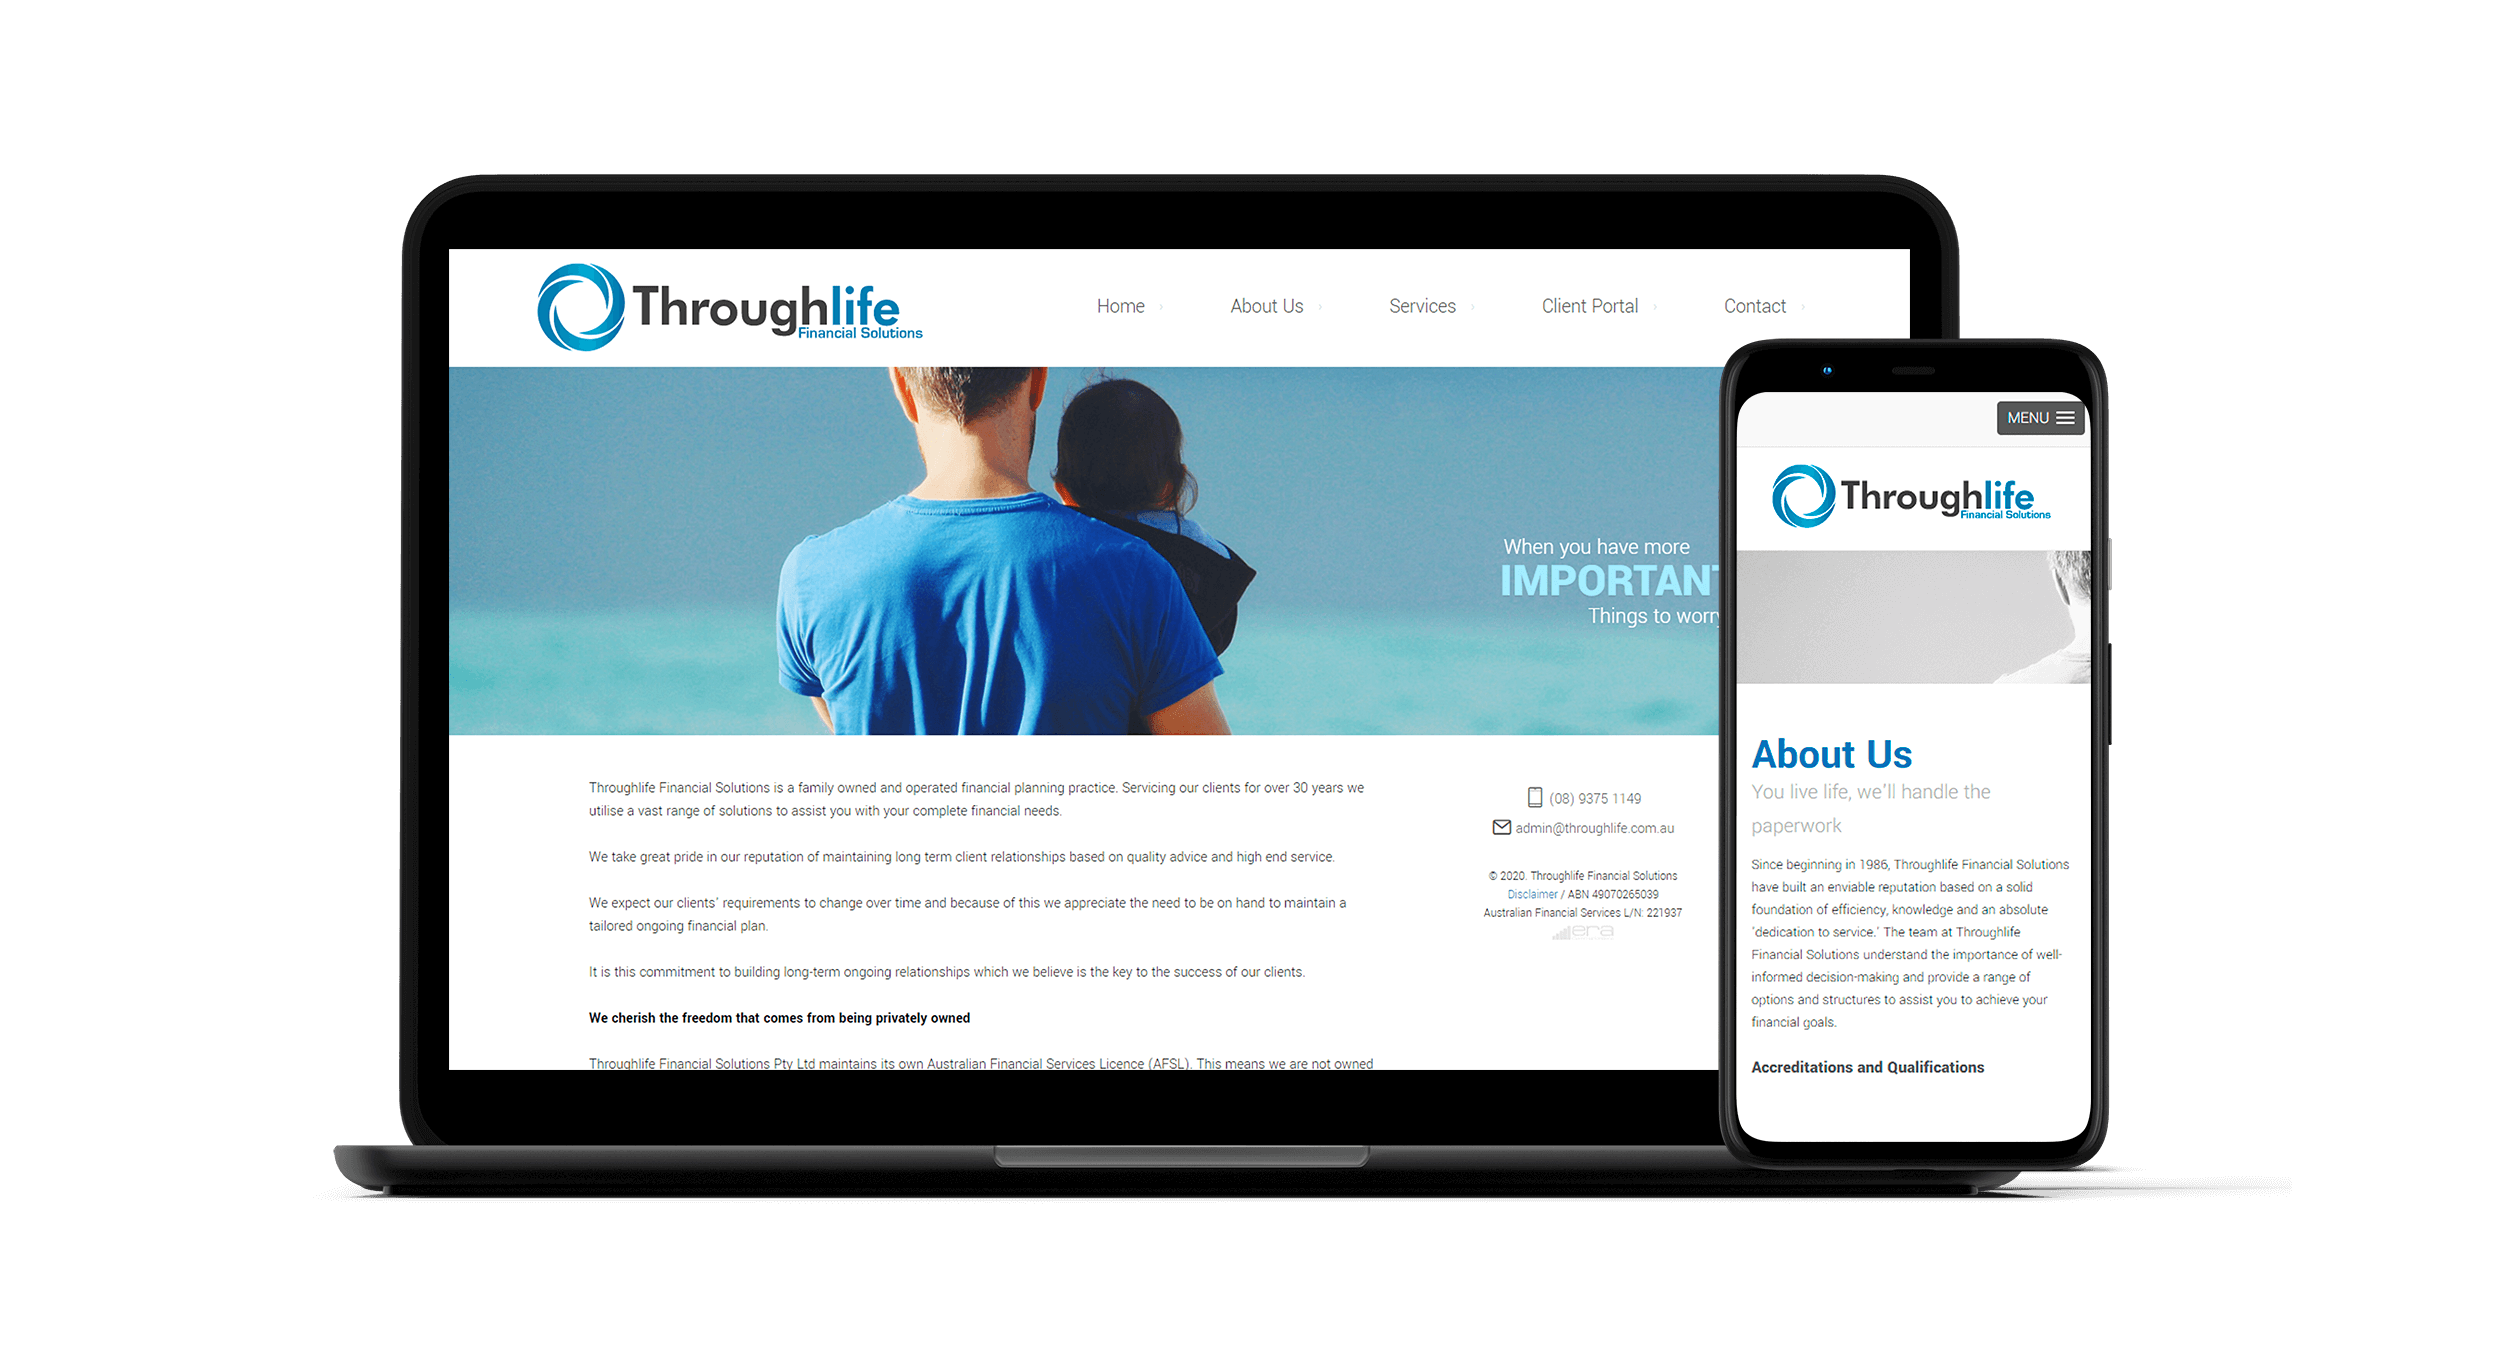 Throughlife Financial